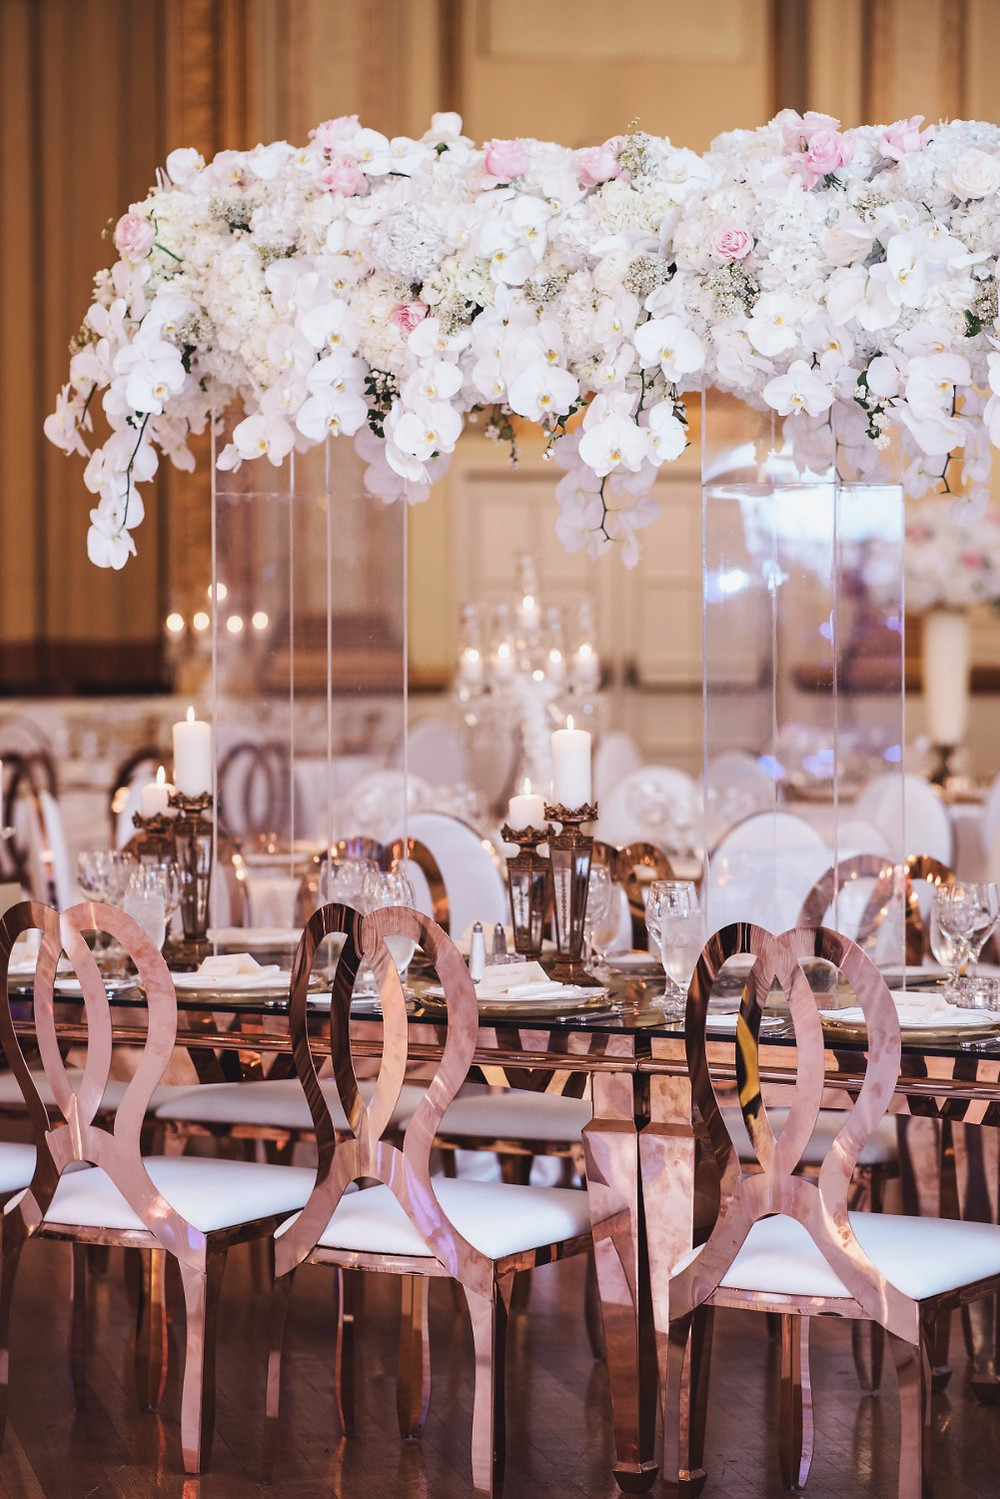 Rose Gold Decor and Chairs